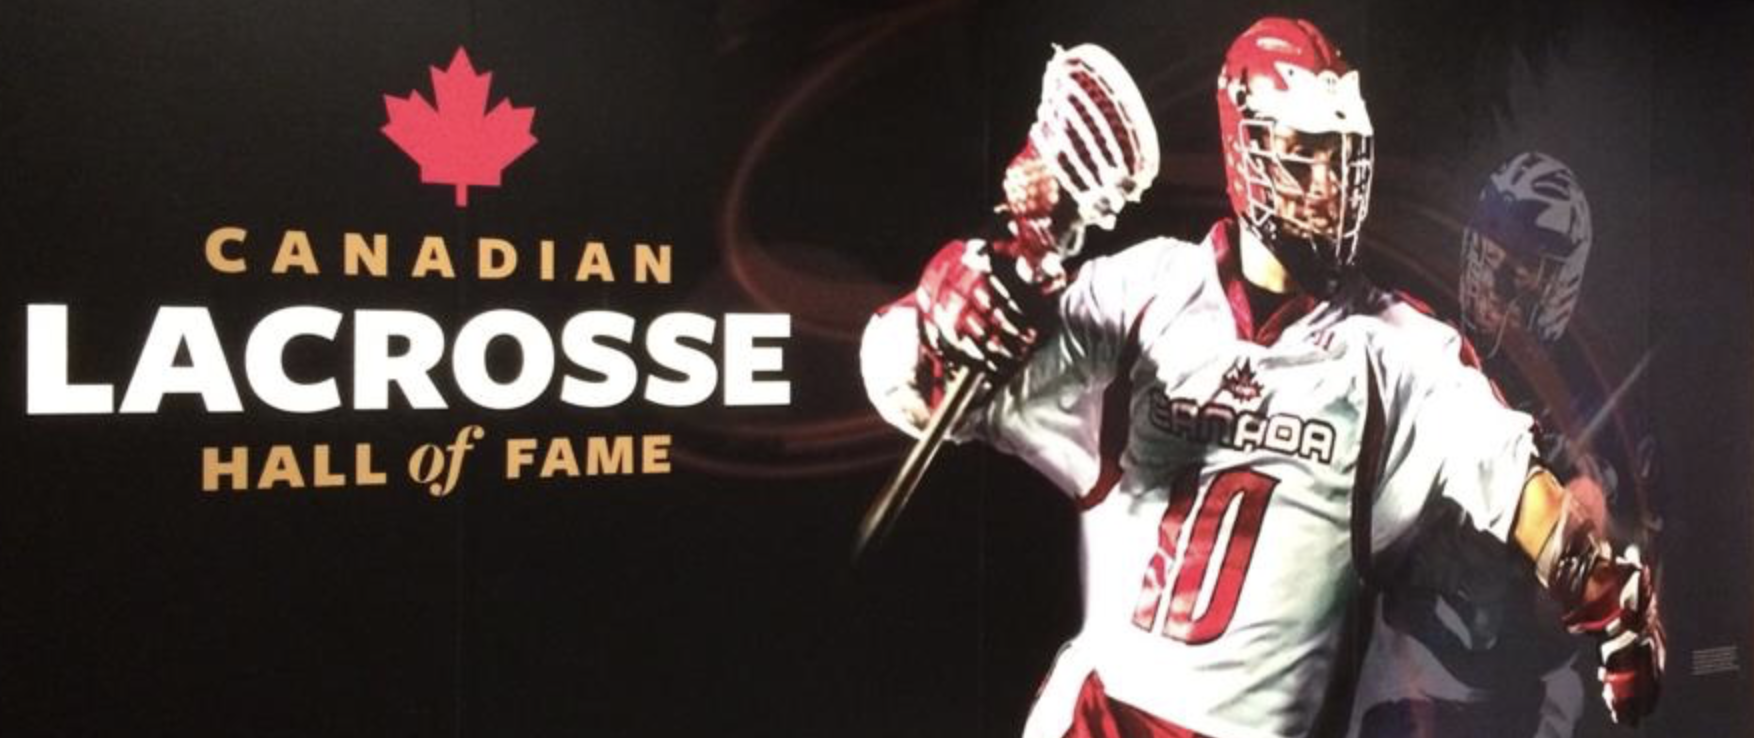 Canadian Lacrosse Hall of Fame